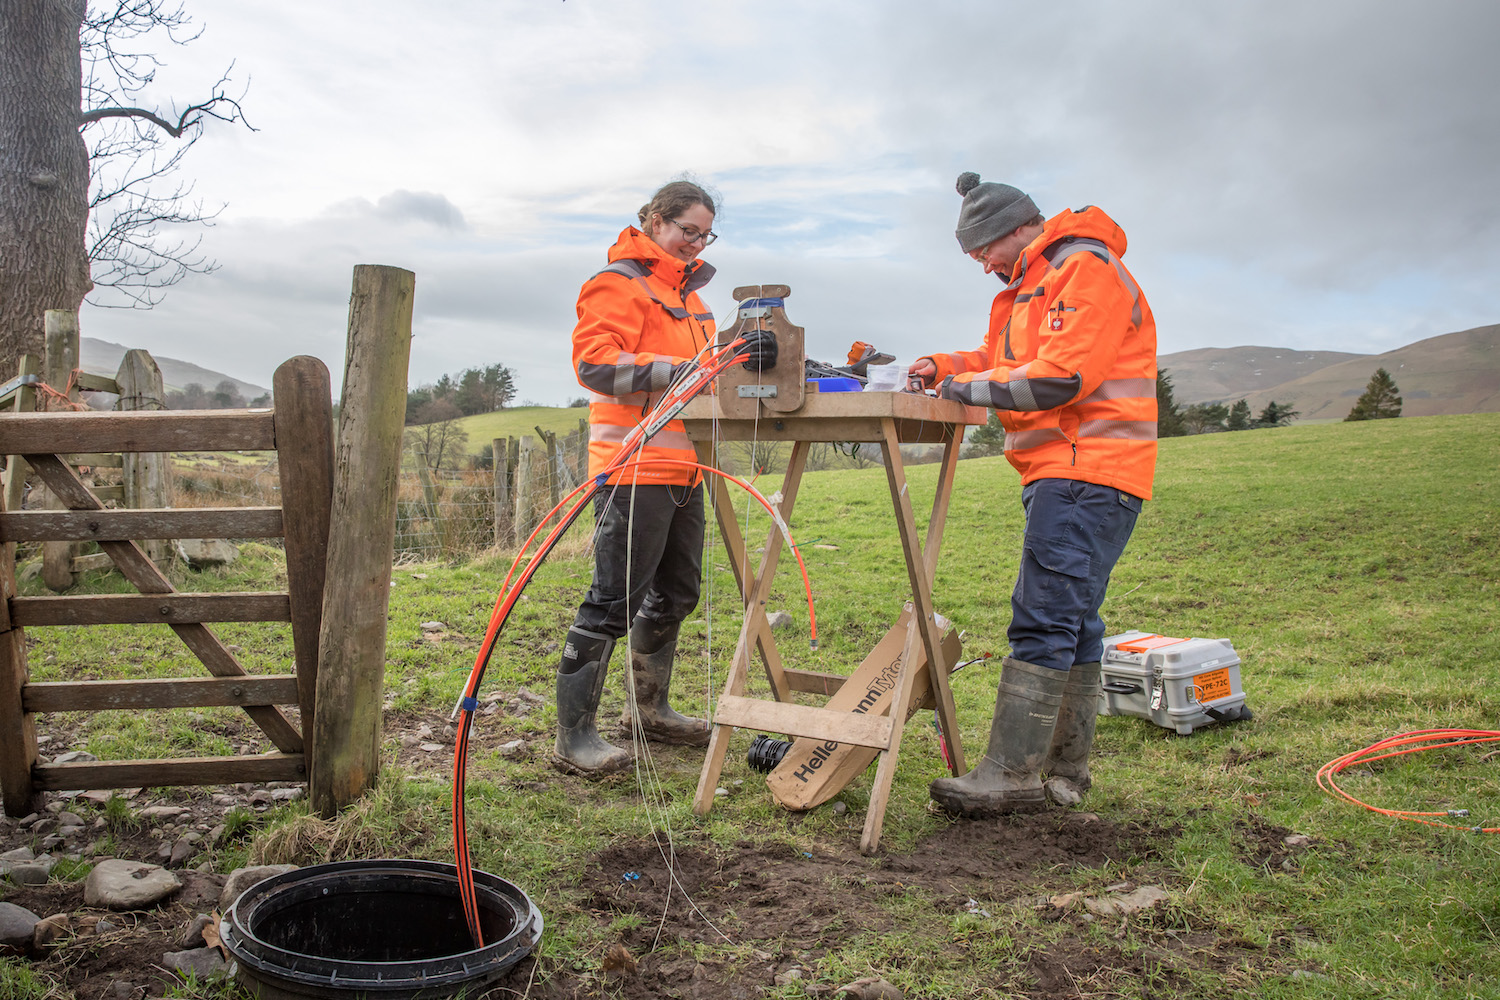 How the 'world's fastest' broadband is coming to rural UK communities that big providers won't touch